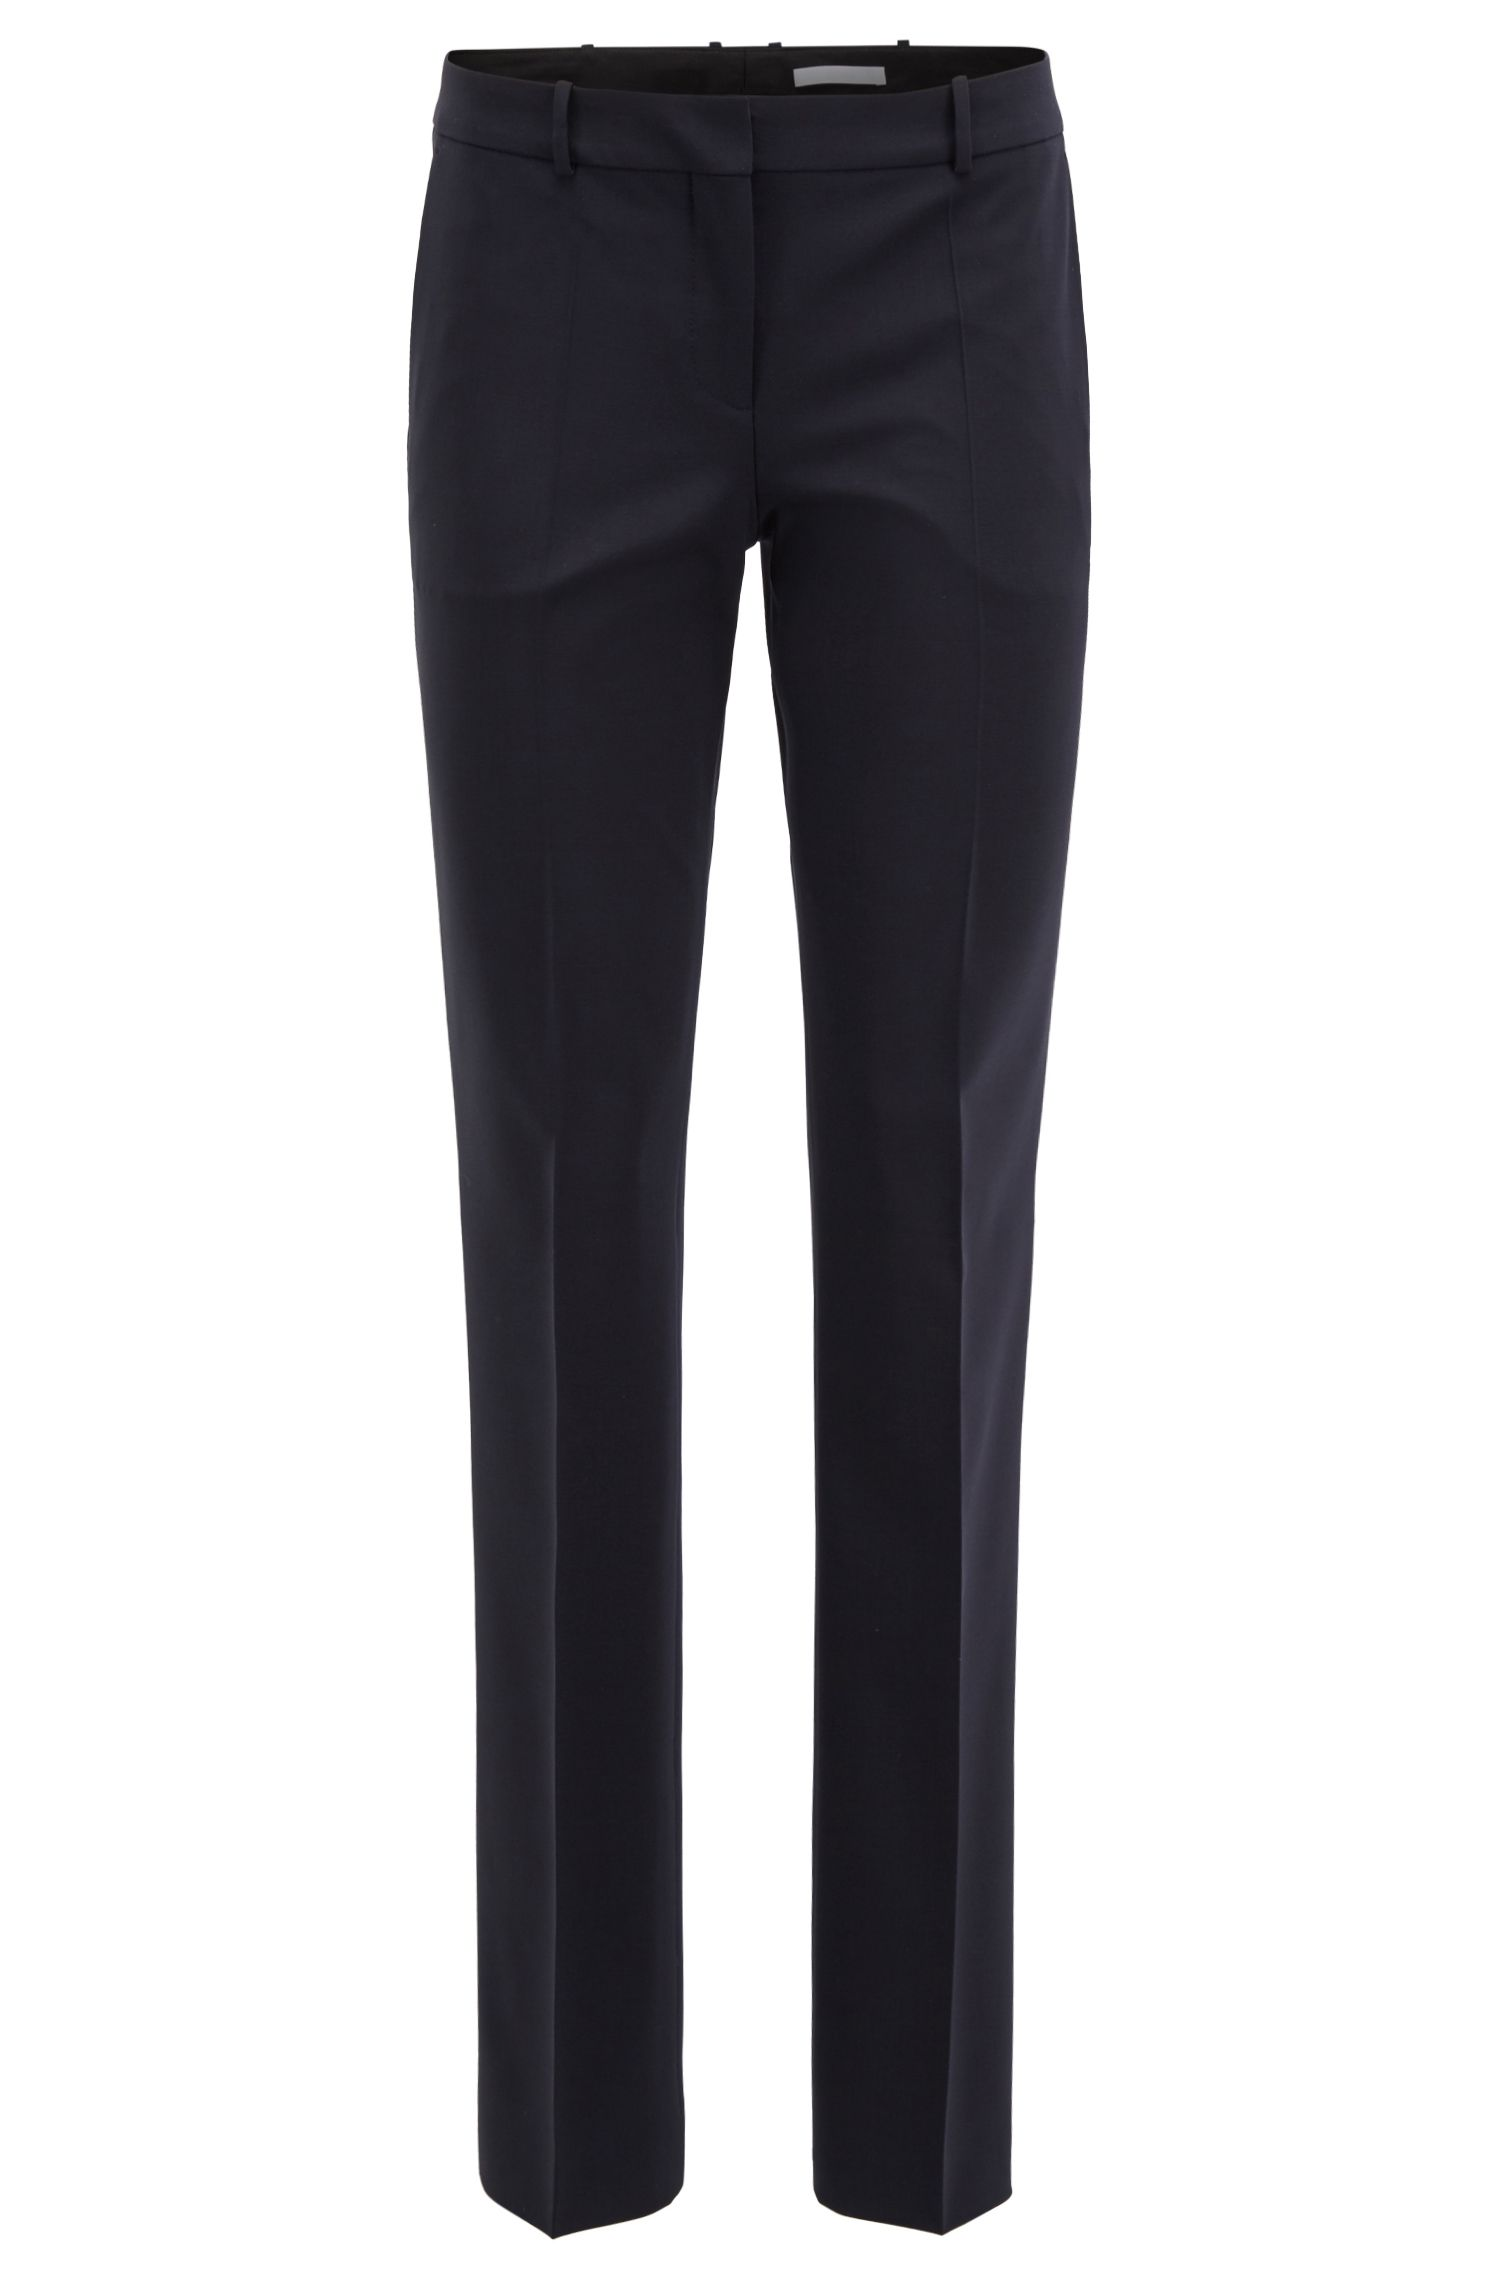 Pantalon business coupe droite en laine stretch